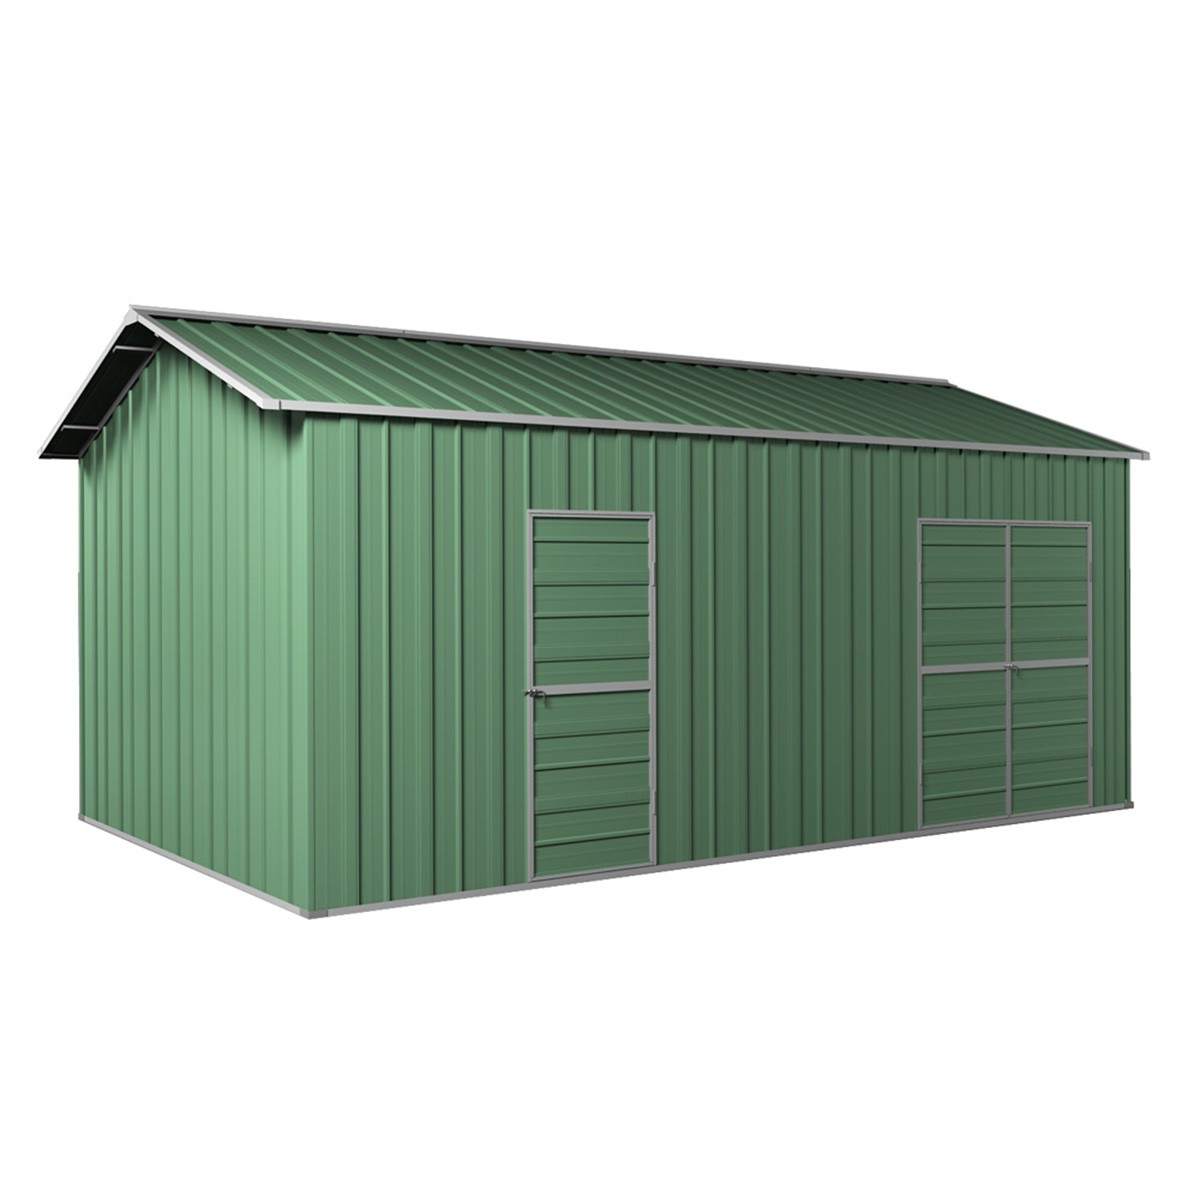 Garage workshop shed m side double doors pa